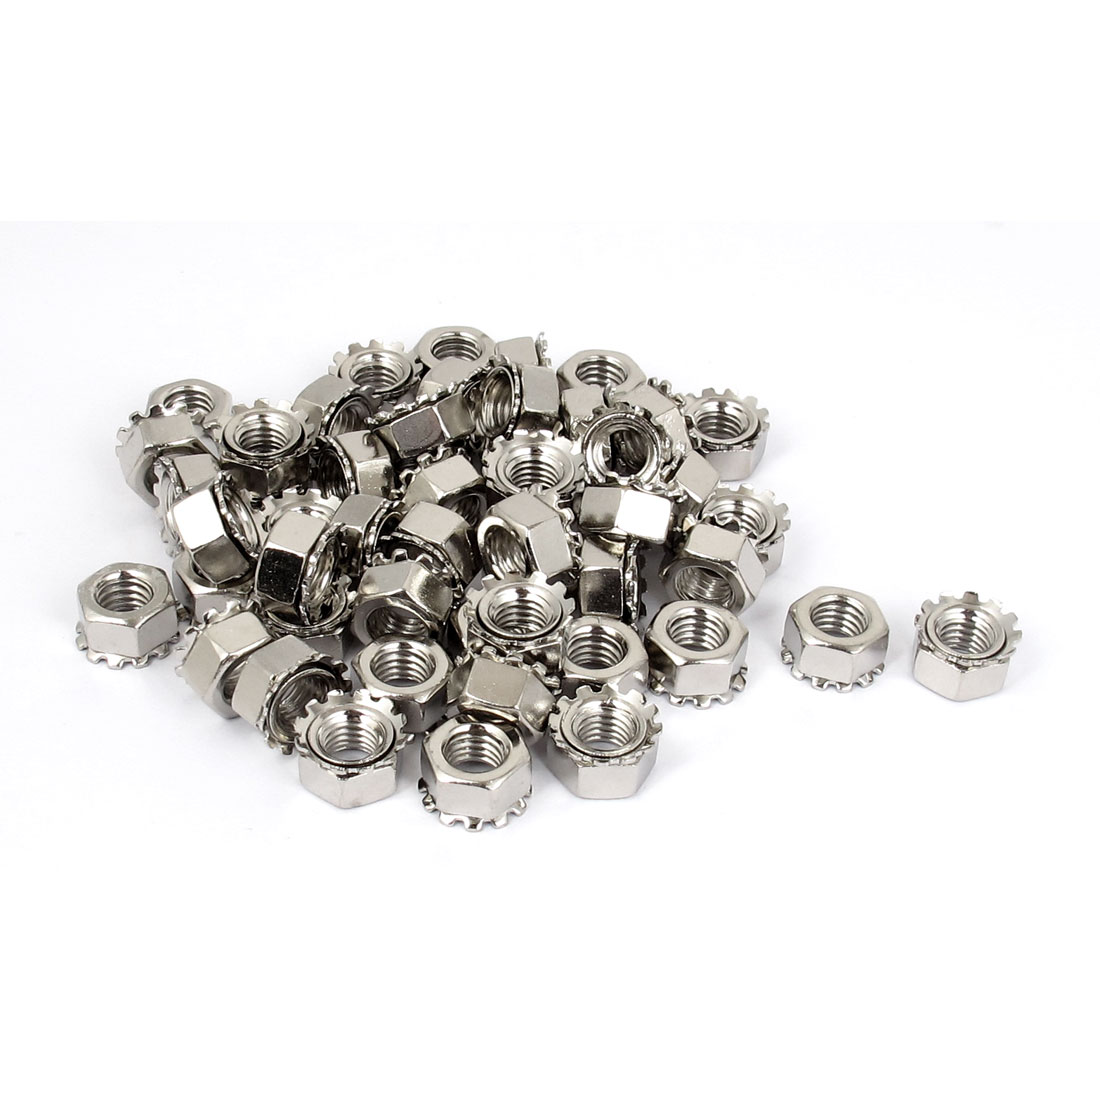 M8 Thread Dia Nickel Plated External Tooth Locknuts Kep Nut Silver Tone 50pcs